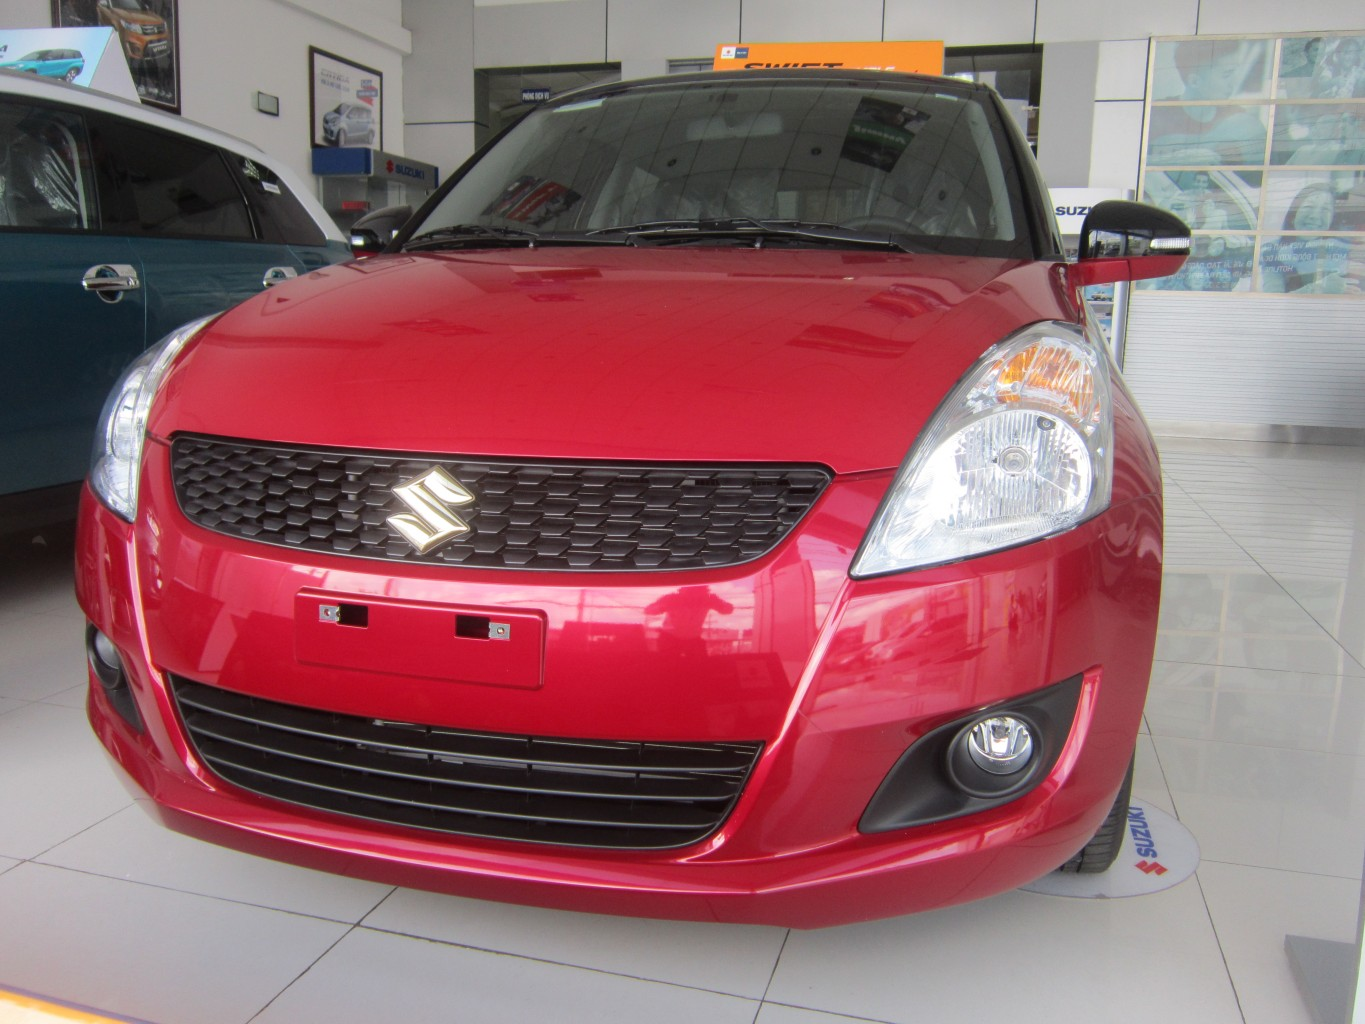 Suzuki Swift 12